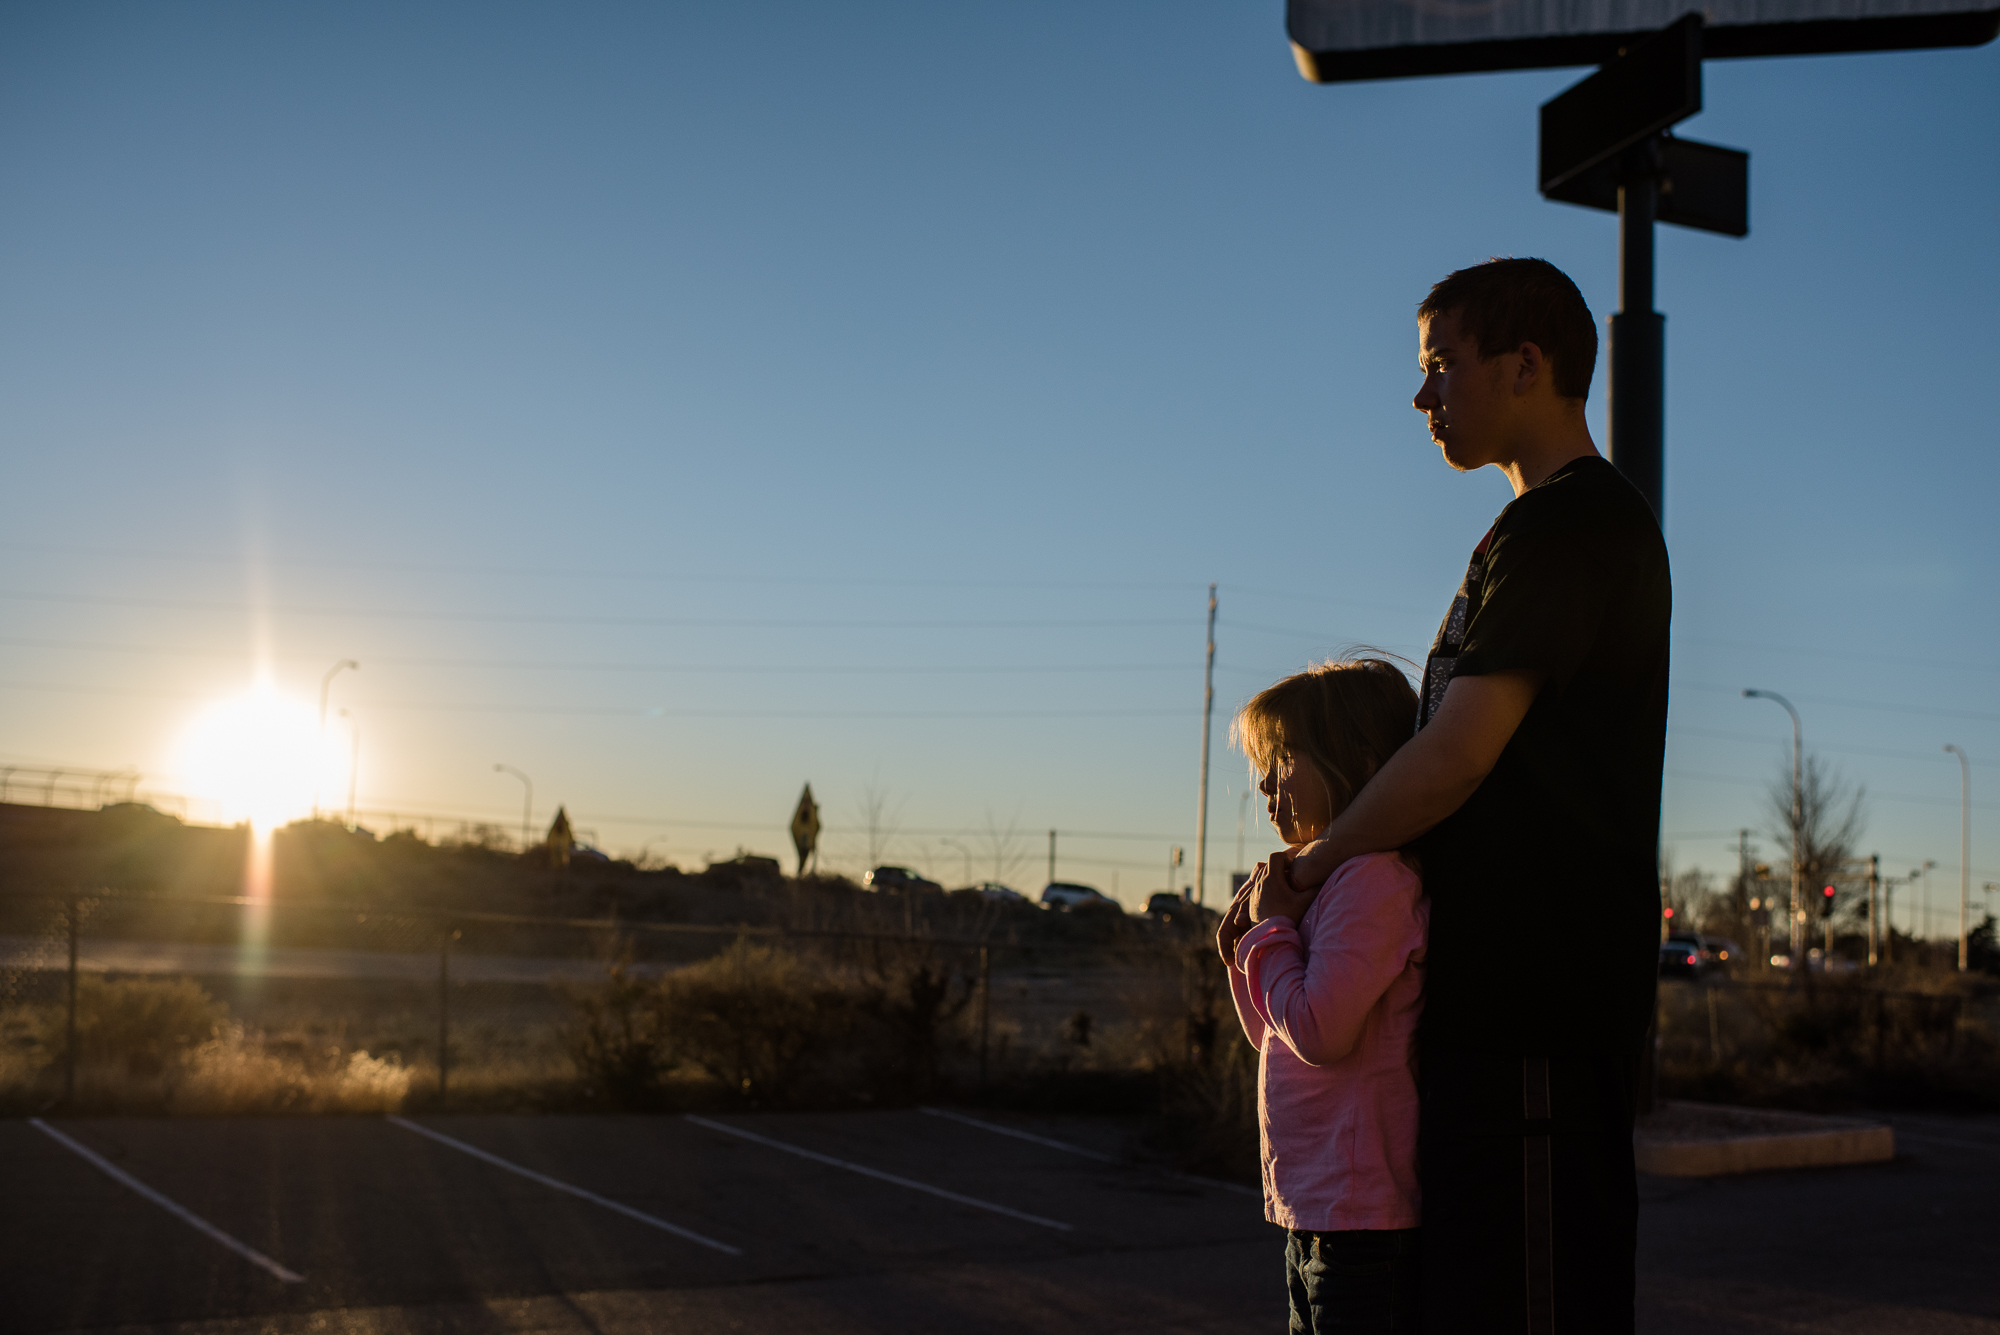 Vinny, age 16, and Elycia, age 7, watch the sunset behind Interstate 40 from the motel parking lot, 2015.